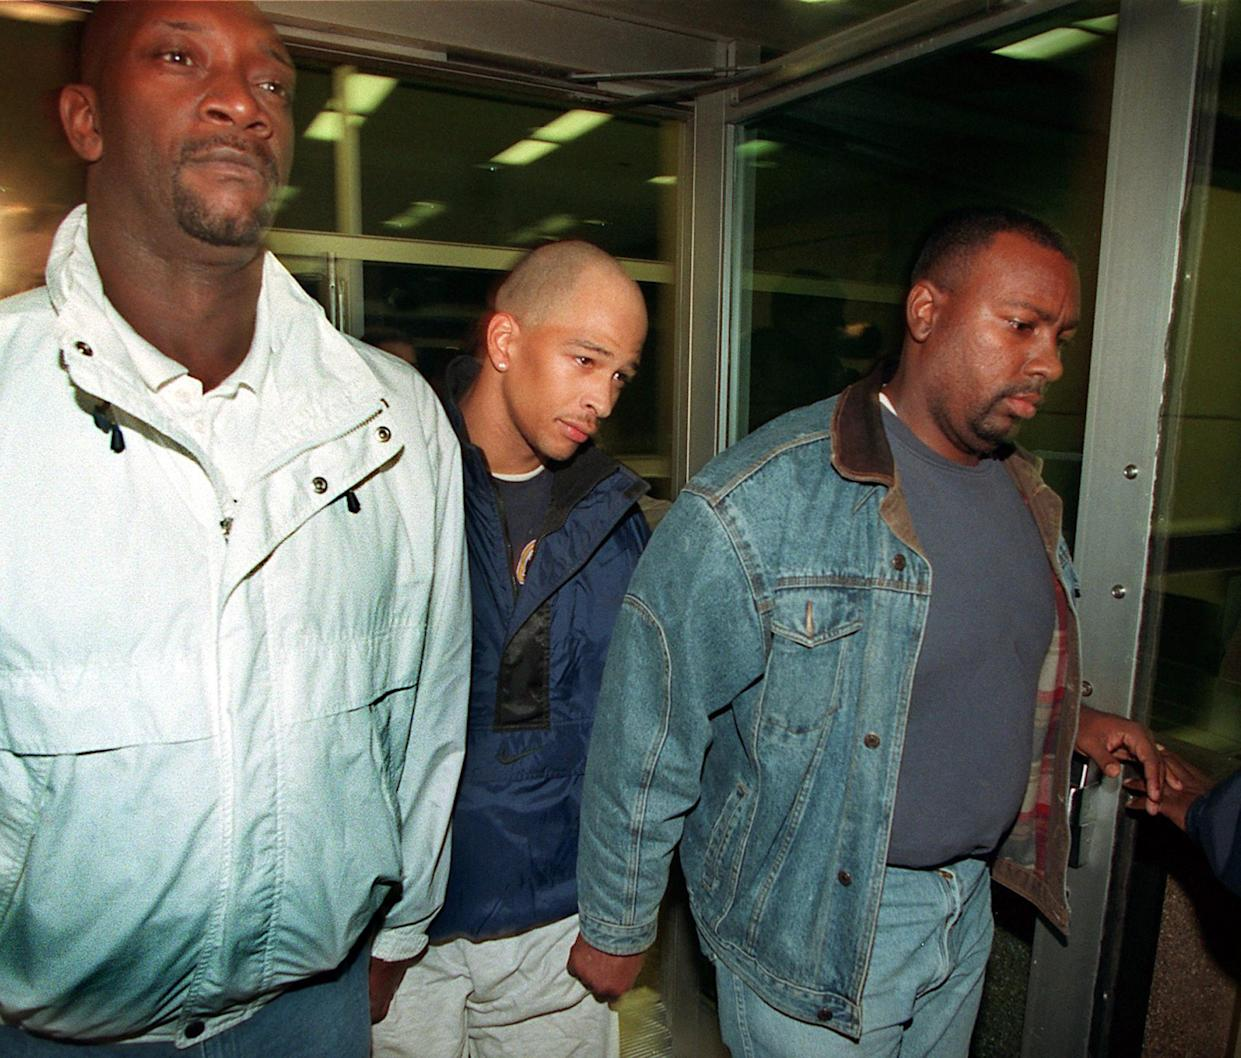 Rae Carruth, center, walks away from the Mecklenburg County Jail after making bond on Dec. 6, 1999, in Charlotte, North Carolina. (Getty)